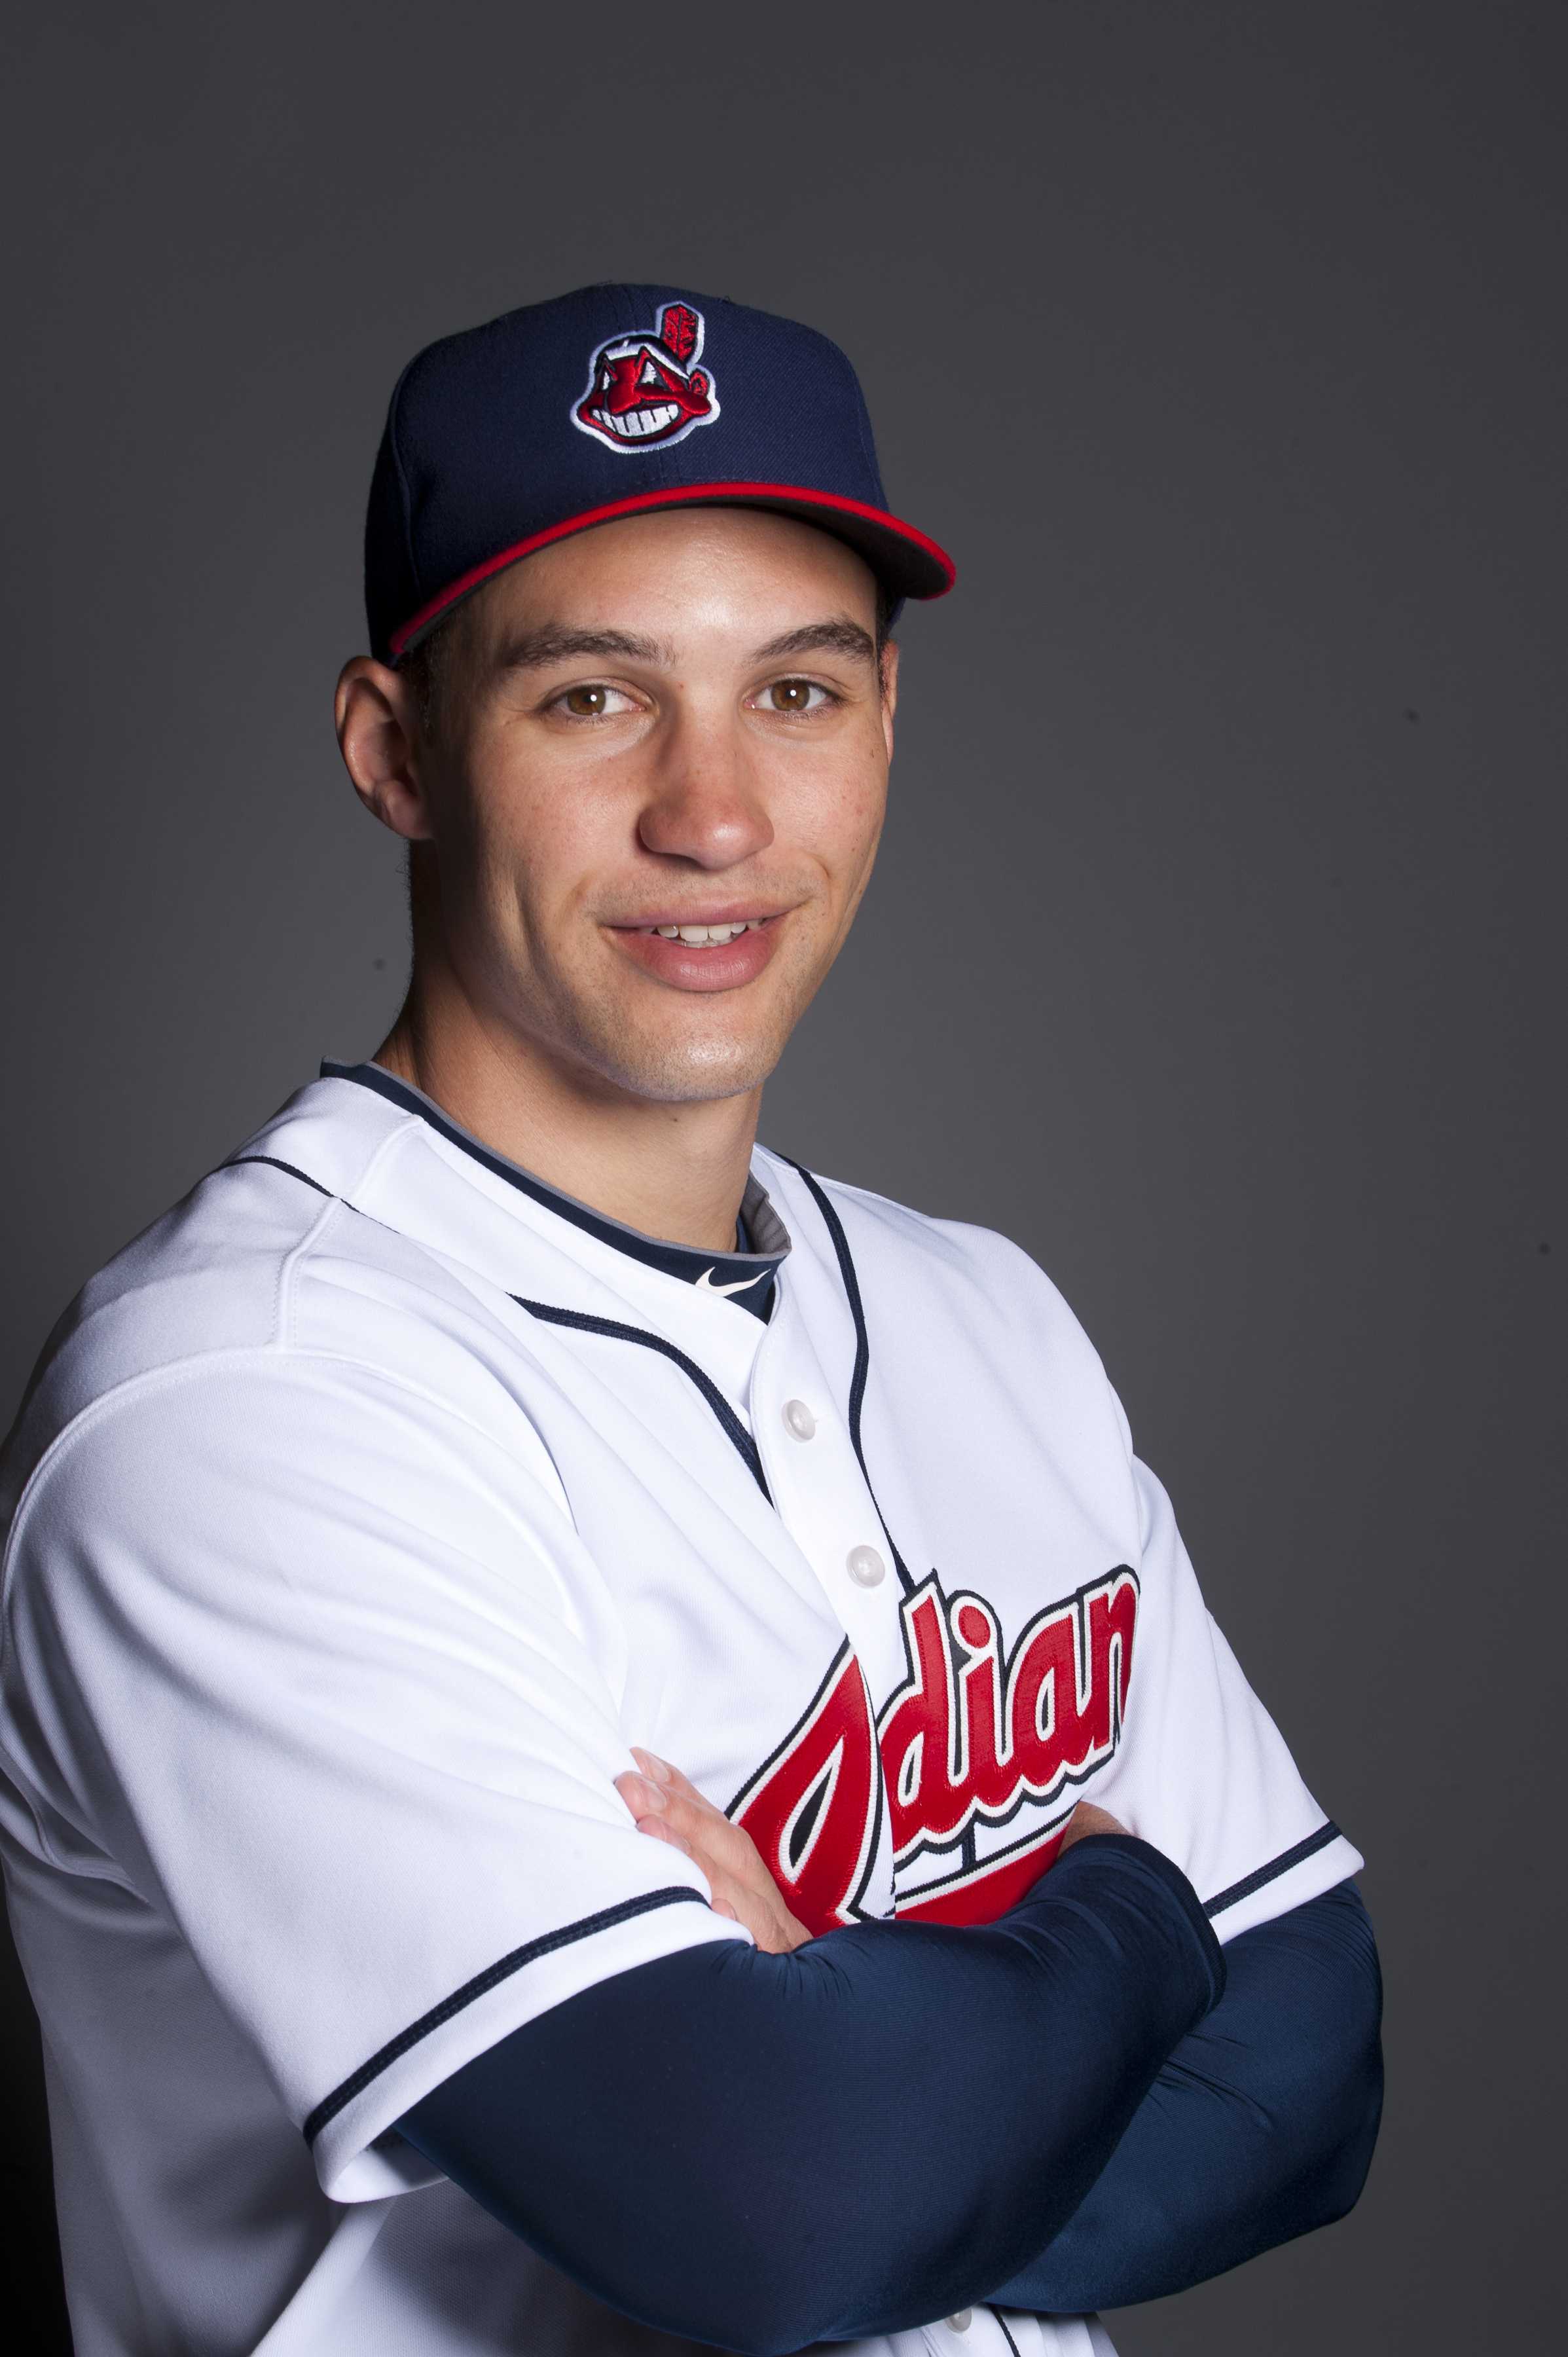 GOODYEAR, AZ - FEBRUARY 22: Grady Sizemore #24 of the Cleveland Indians poses during their photo day at the Cleveland Indians Spring Training Complex on February 22, 2011 in Goodyear ,Arizona. (Photo by Rob Tringali/Getty Images)